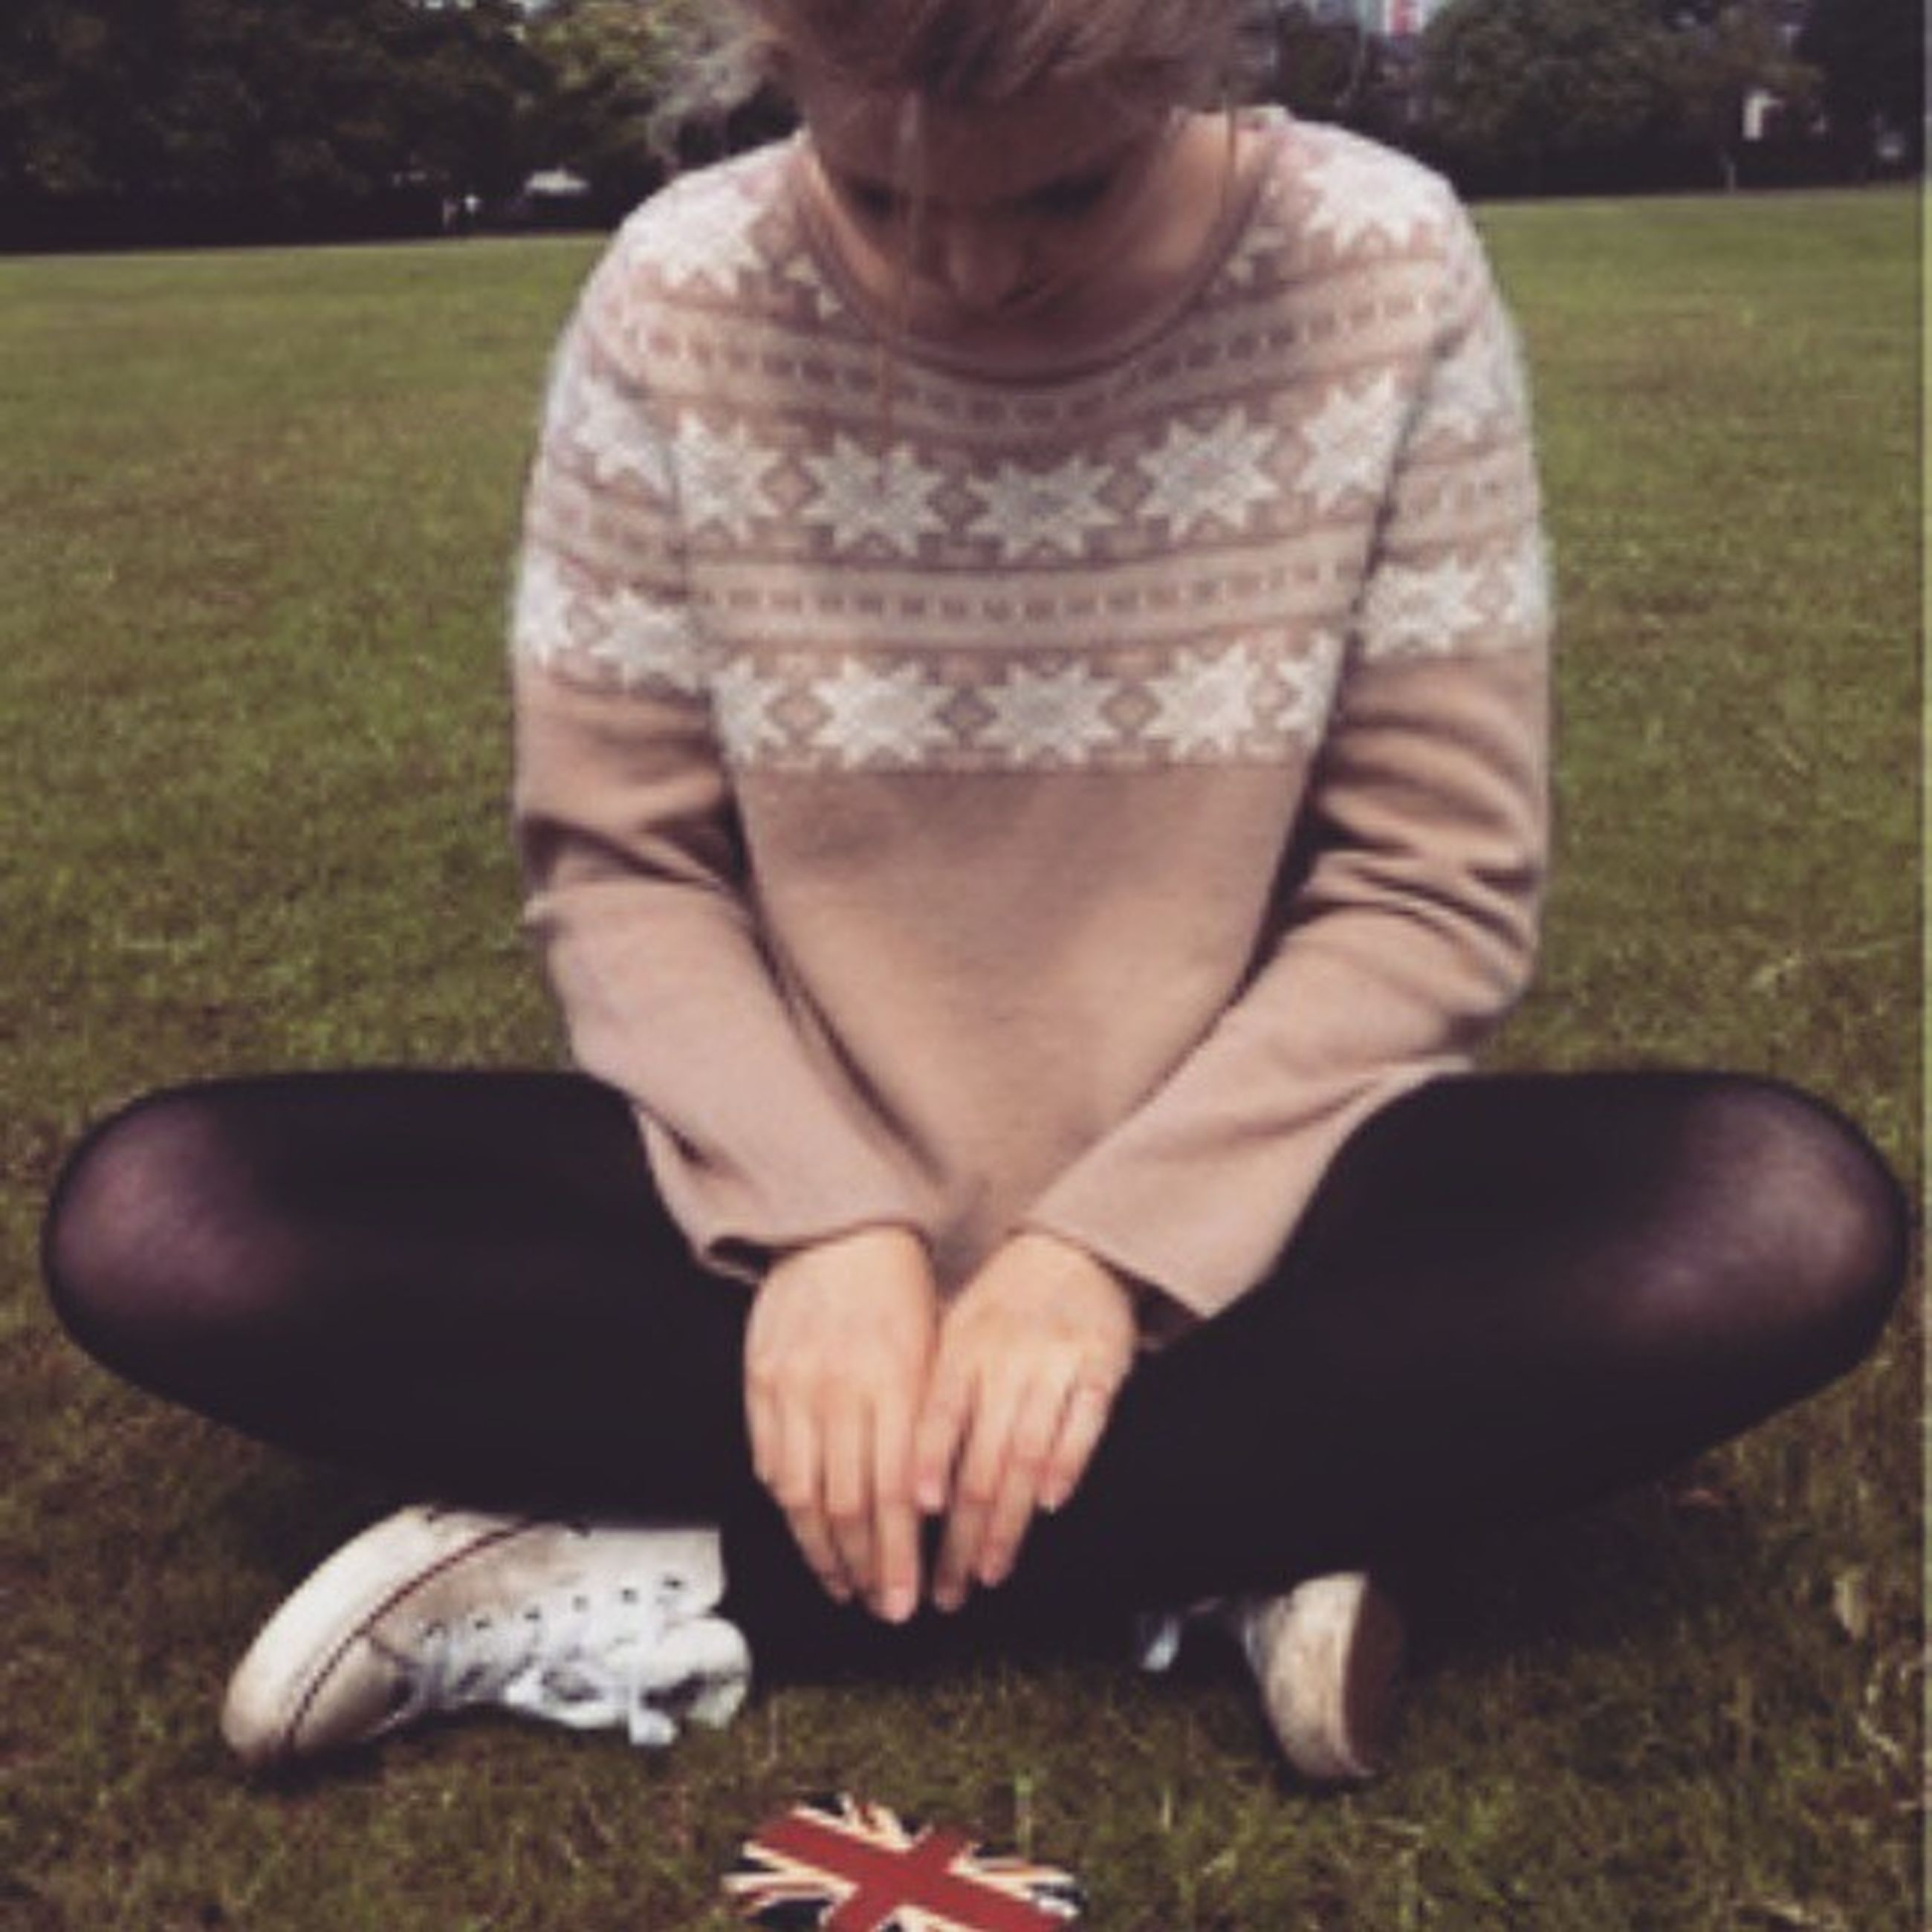 lifestyles, grass, leisure activity, low section, childhood, field, casual clothing, park - man made space, focus on foreground, person, grassy, outdoors, relaxation, sitting, day, elementary age, full length